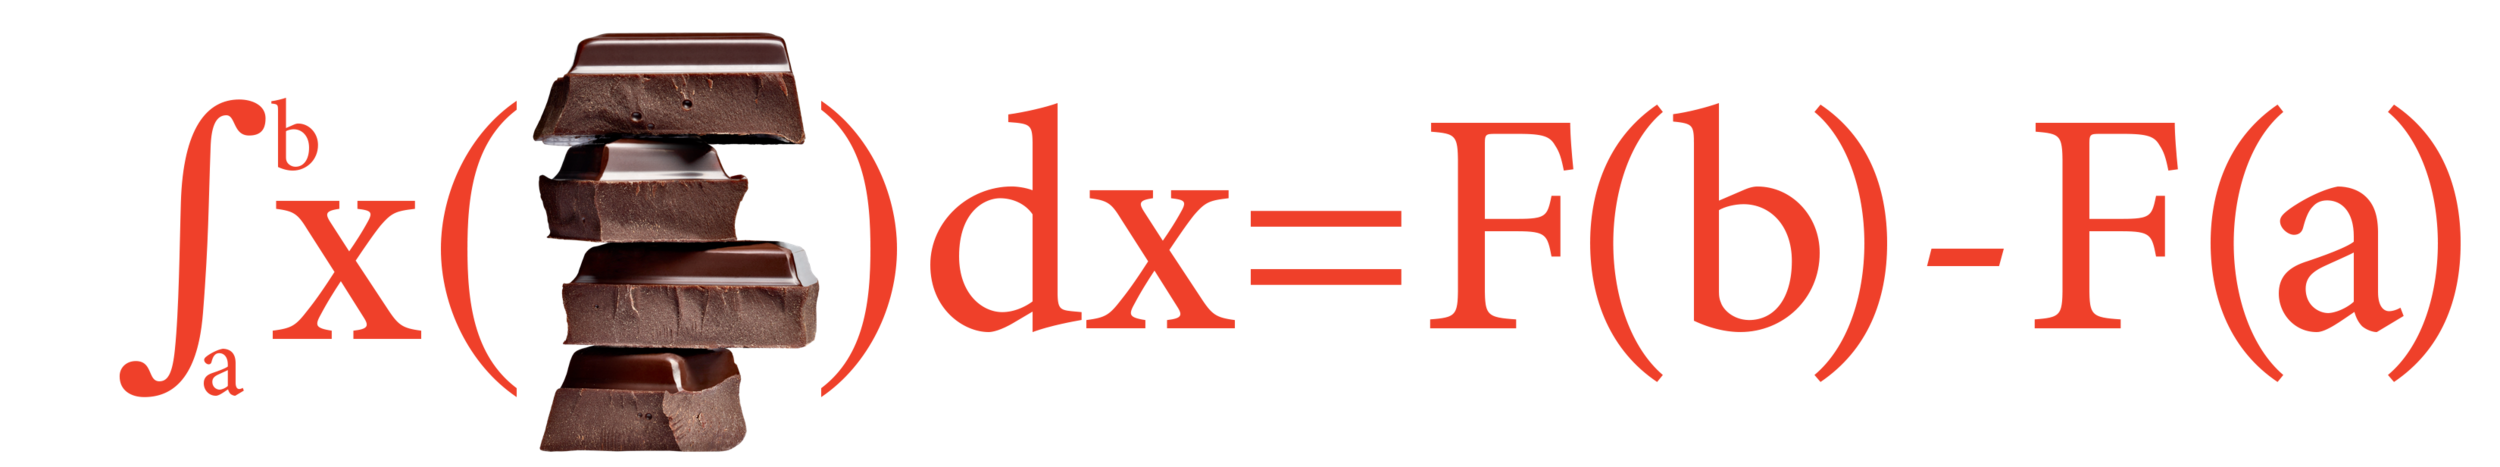 calculus.png